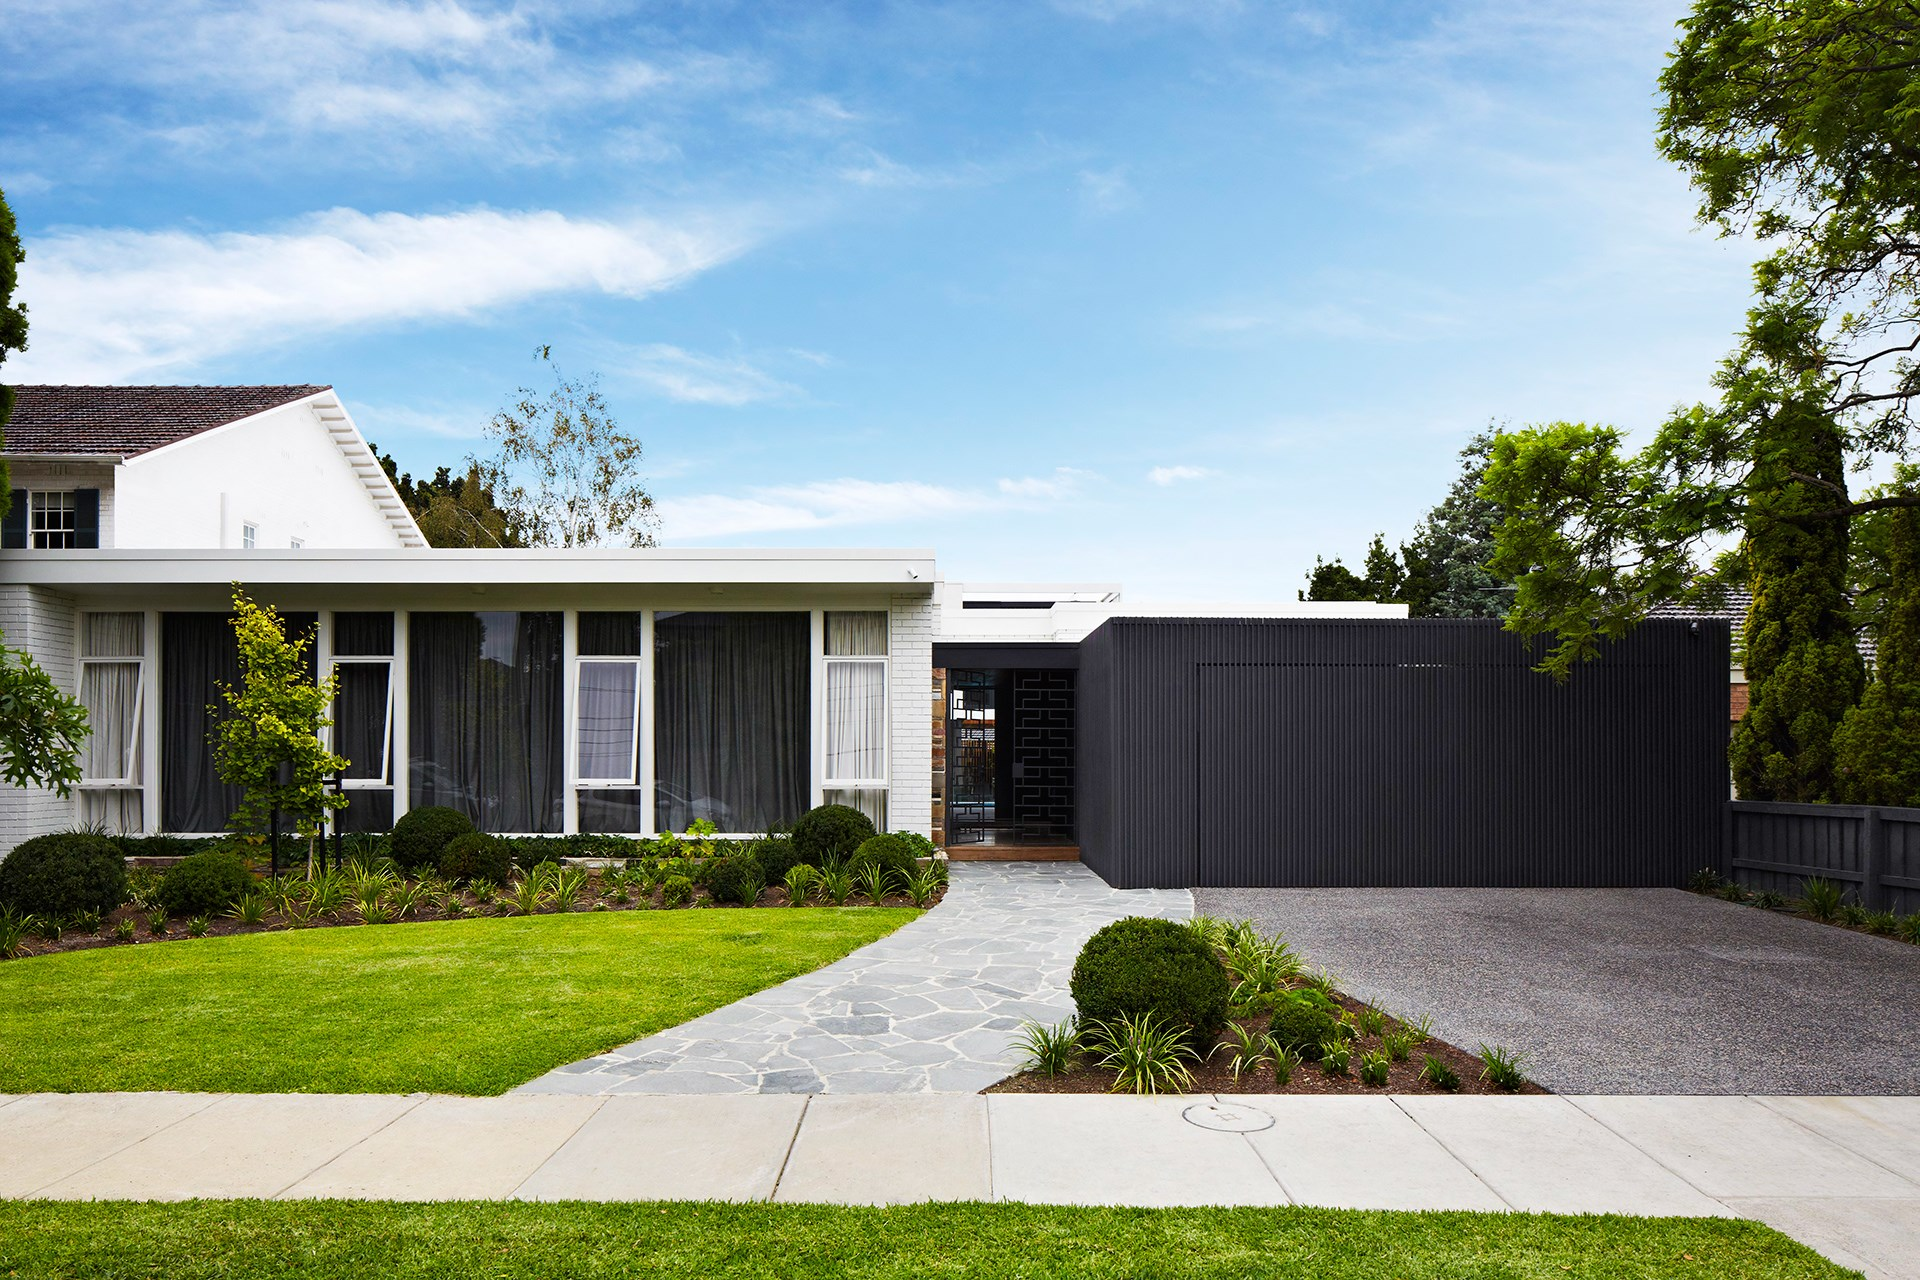 A contemporary colour scheme of charcoal and white works wonders on this 1960s single-storey dwelling. Find out more about this [Melbourne home reno](http://www.homestolove.com.au/gallery-stephen-and-tanyas-melbourne-home-reno-2286). Photo: Armelle Habib / *Australian House & Garden*